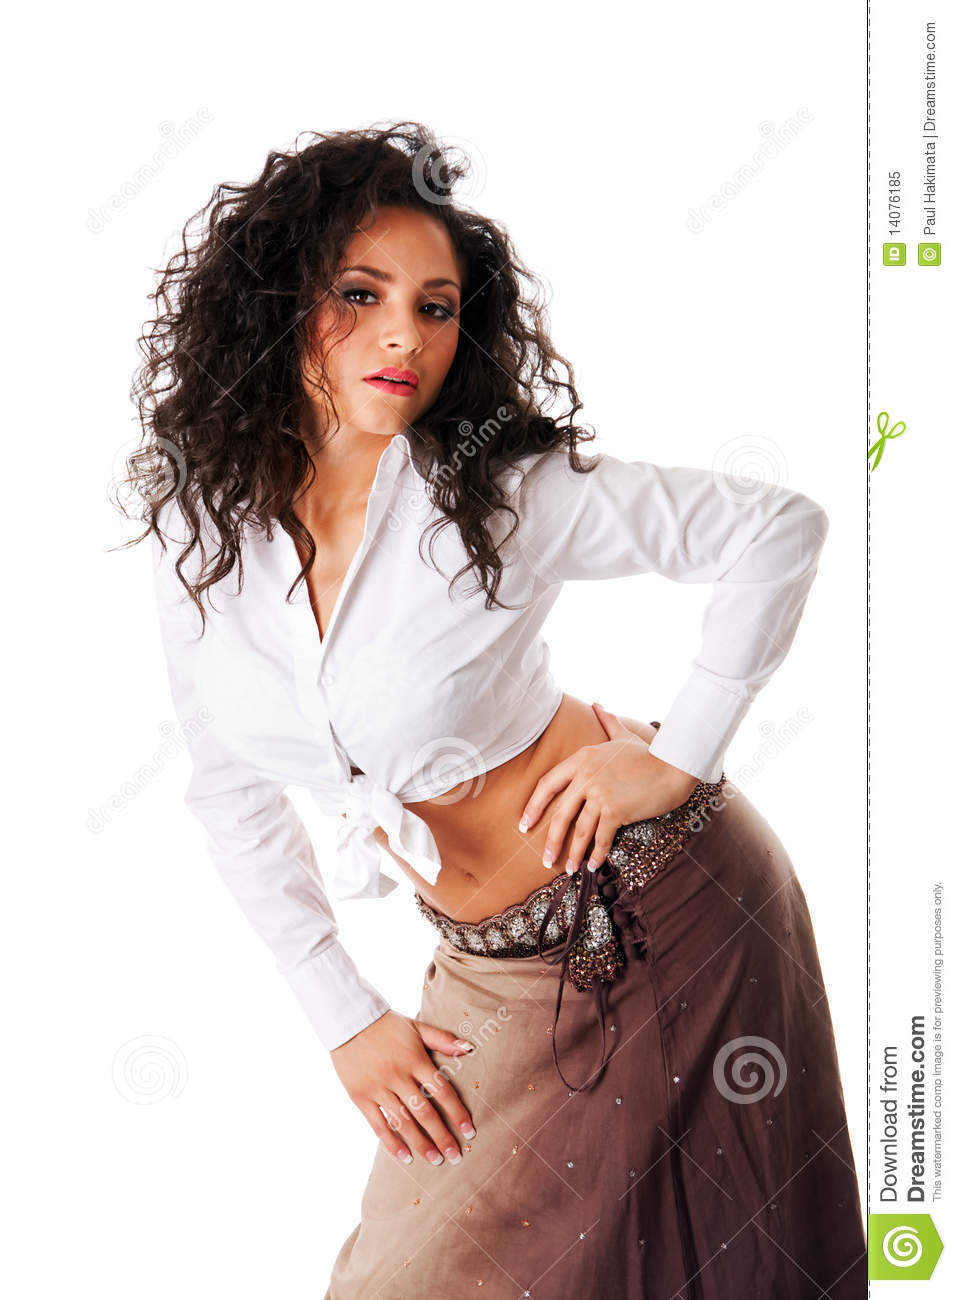 Sexy Young Latina Woman Royalty Free Stock Photo - Image -6369